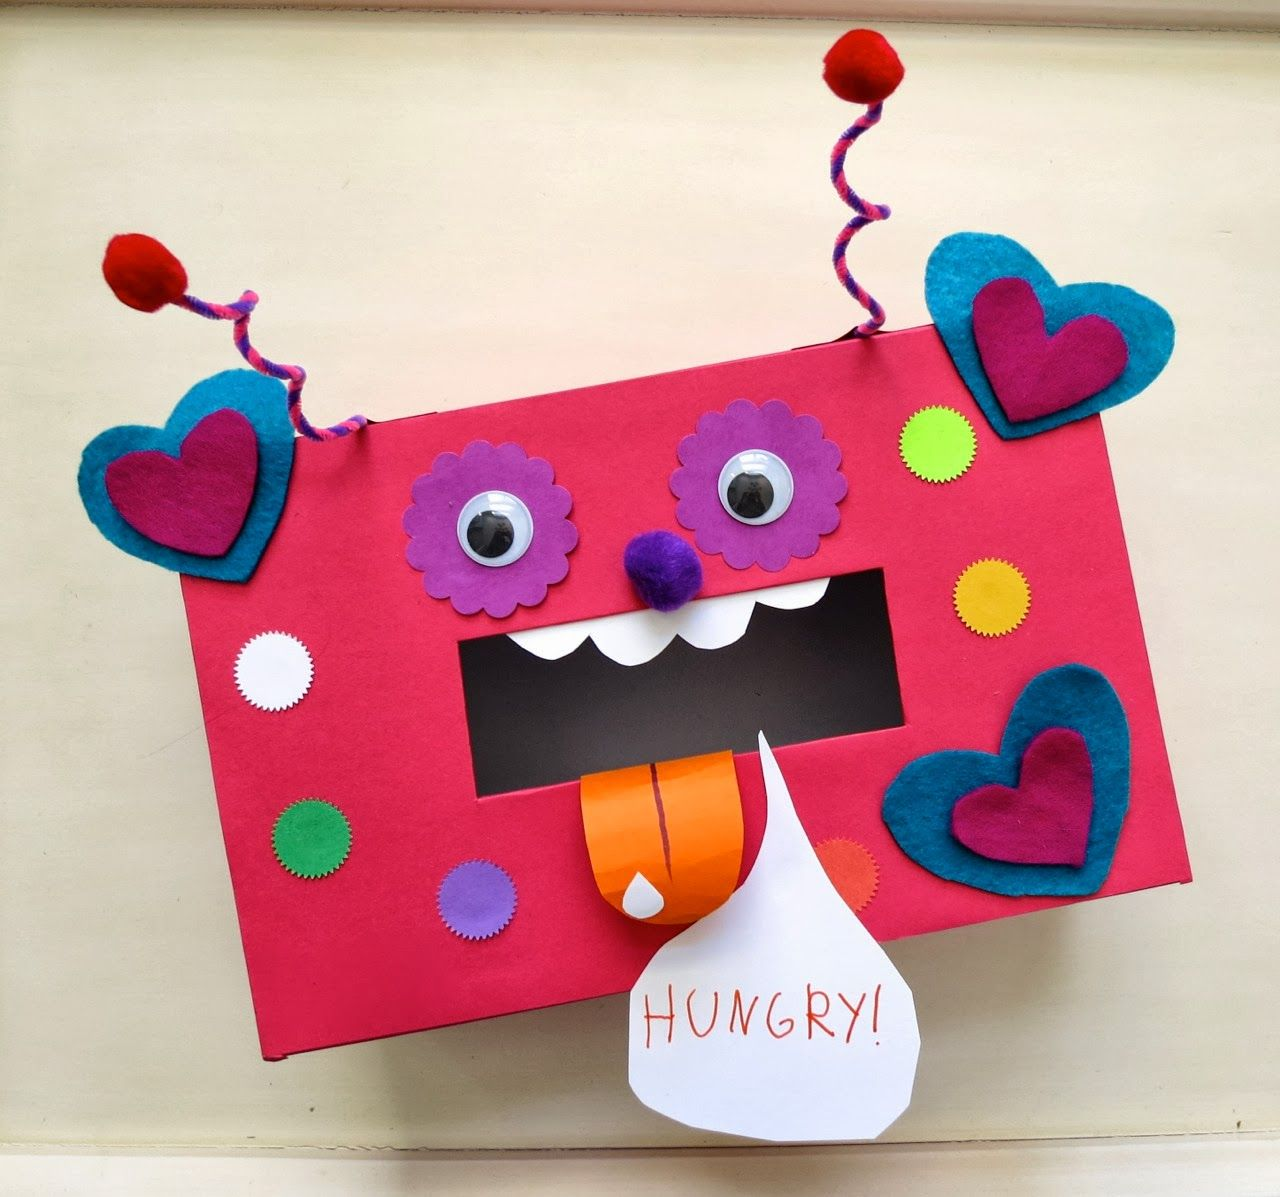 Ideas For Decorating Valentine Box I Remember Elementary School Valentine Parties Fondlywe All Had